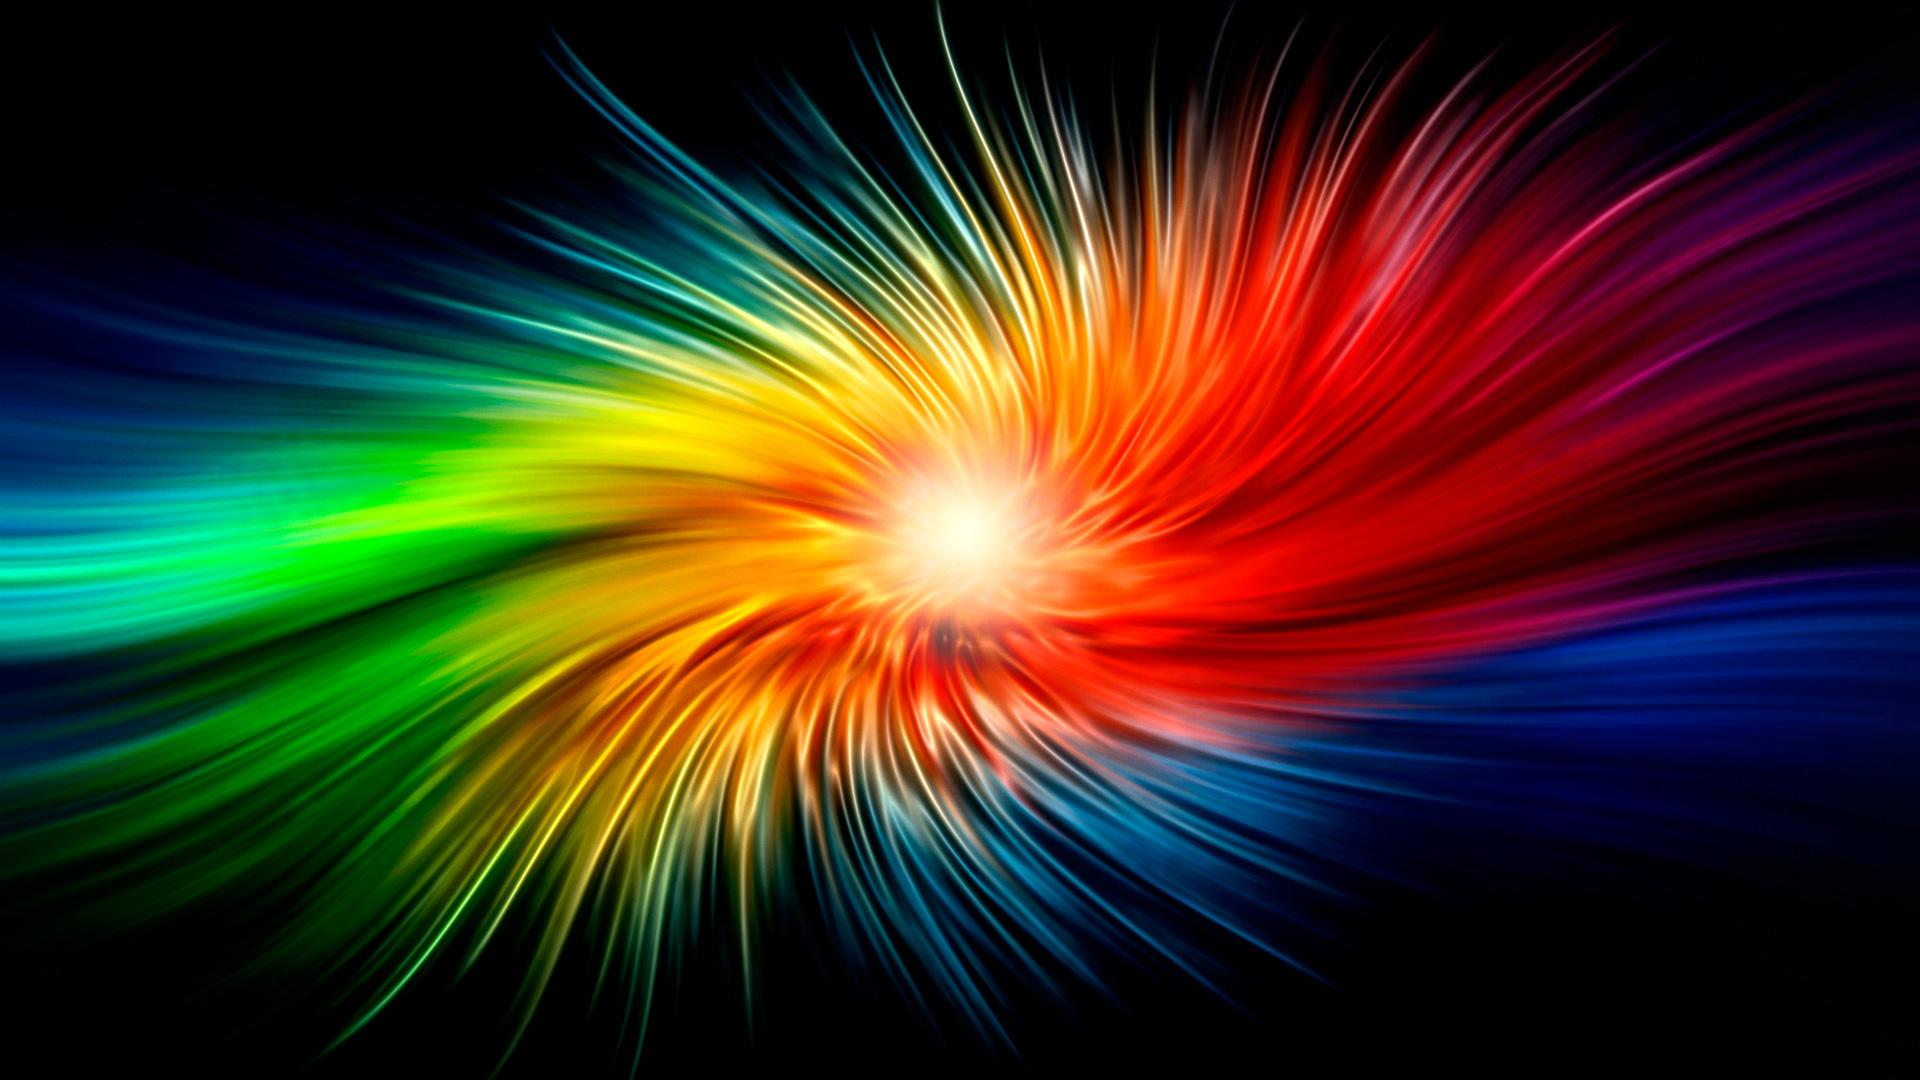 Awesome Colorful Backgrounds 2921 Hd Wallpapers in Others   Imagesci 1920x1080